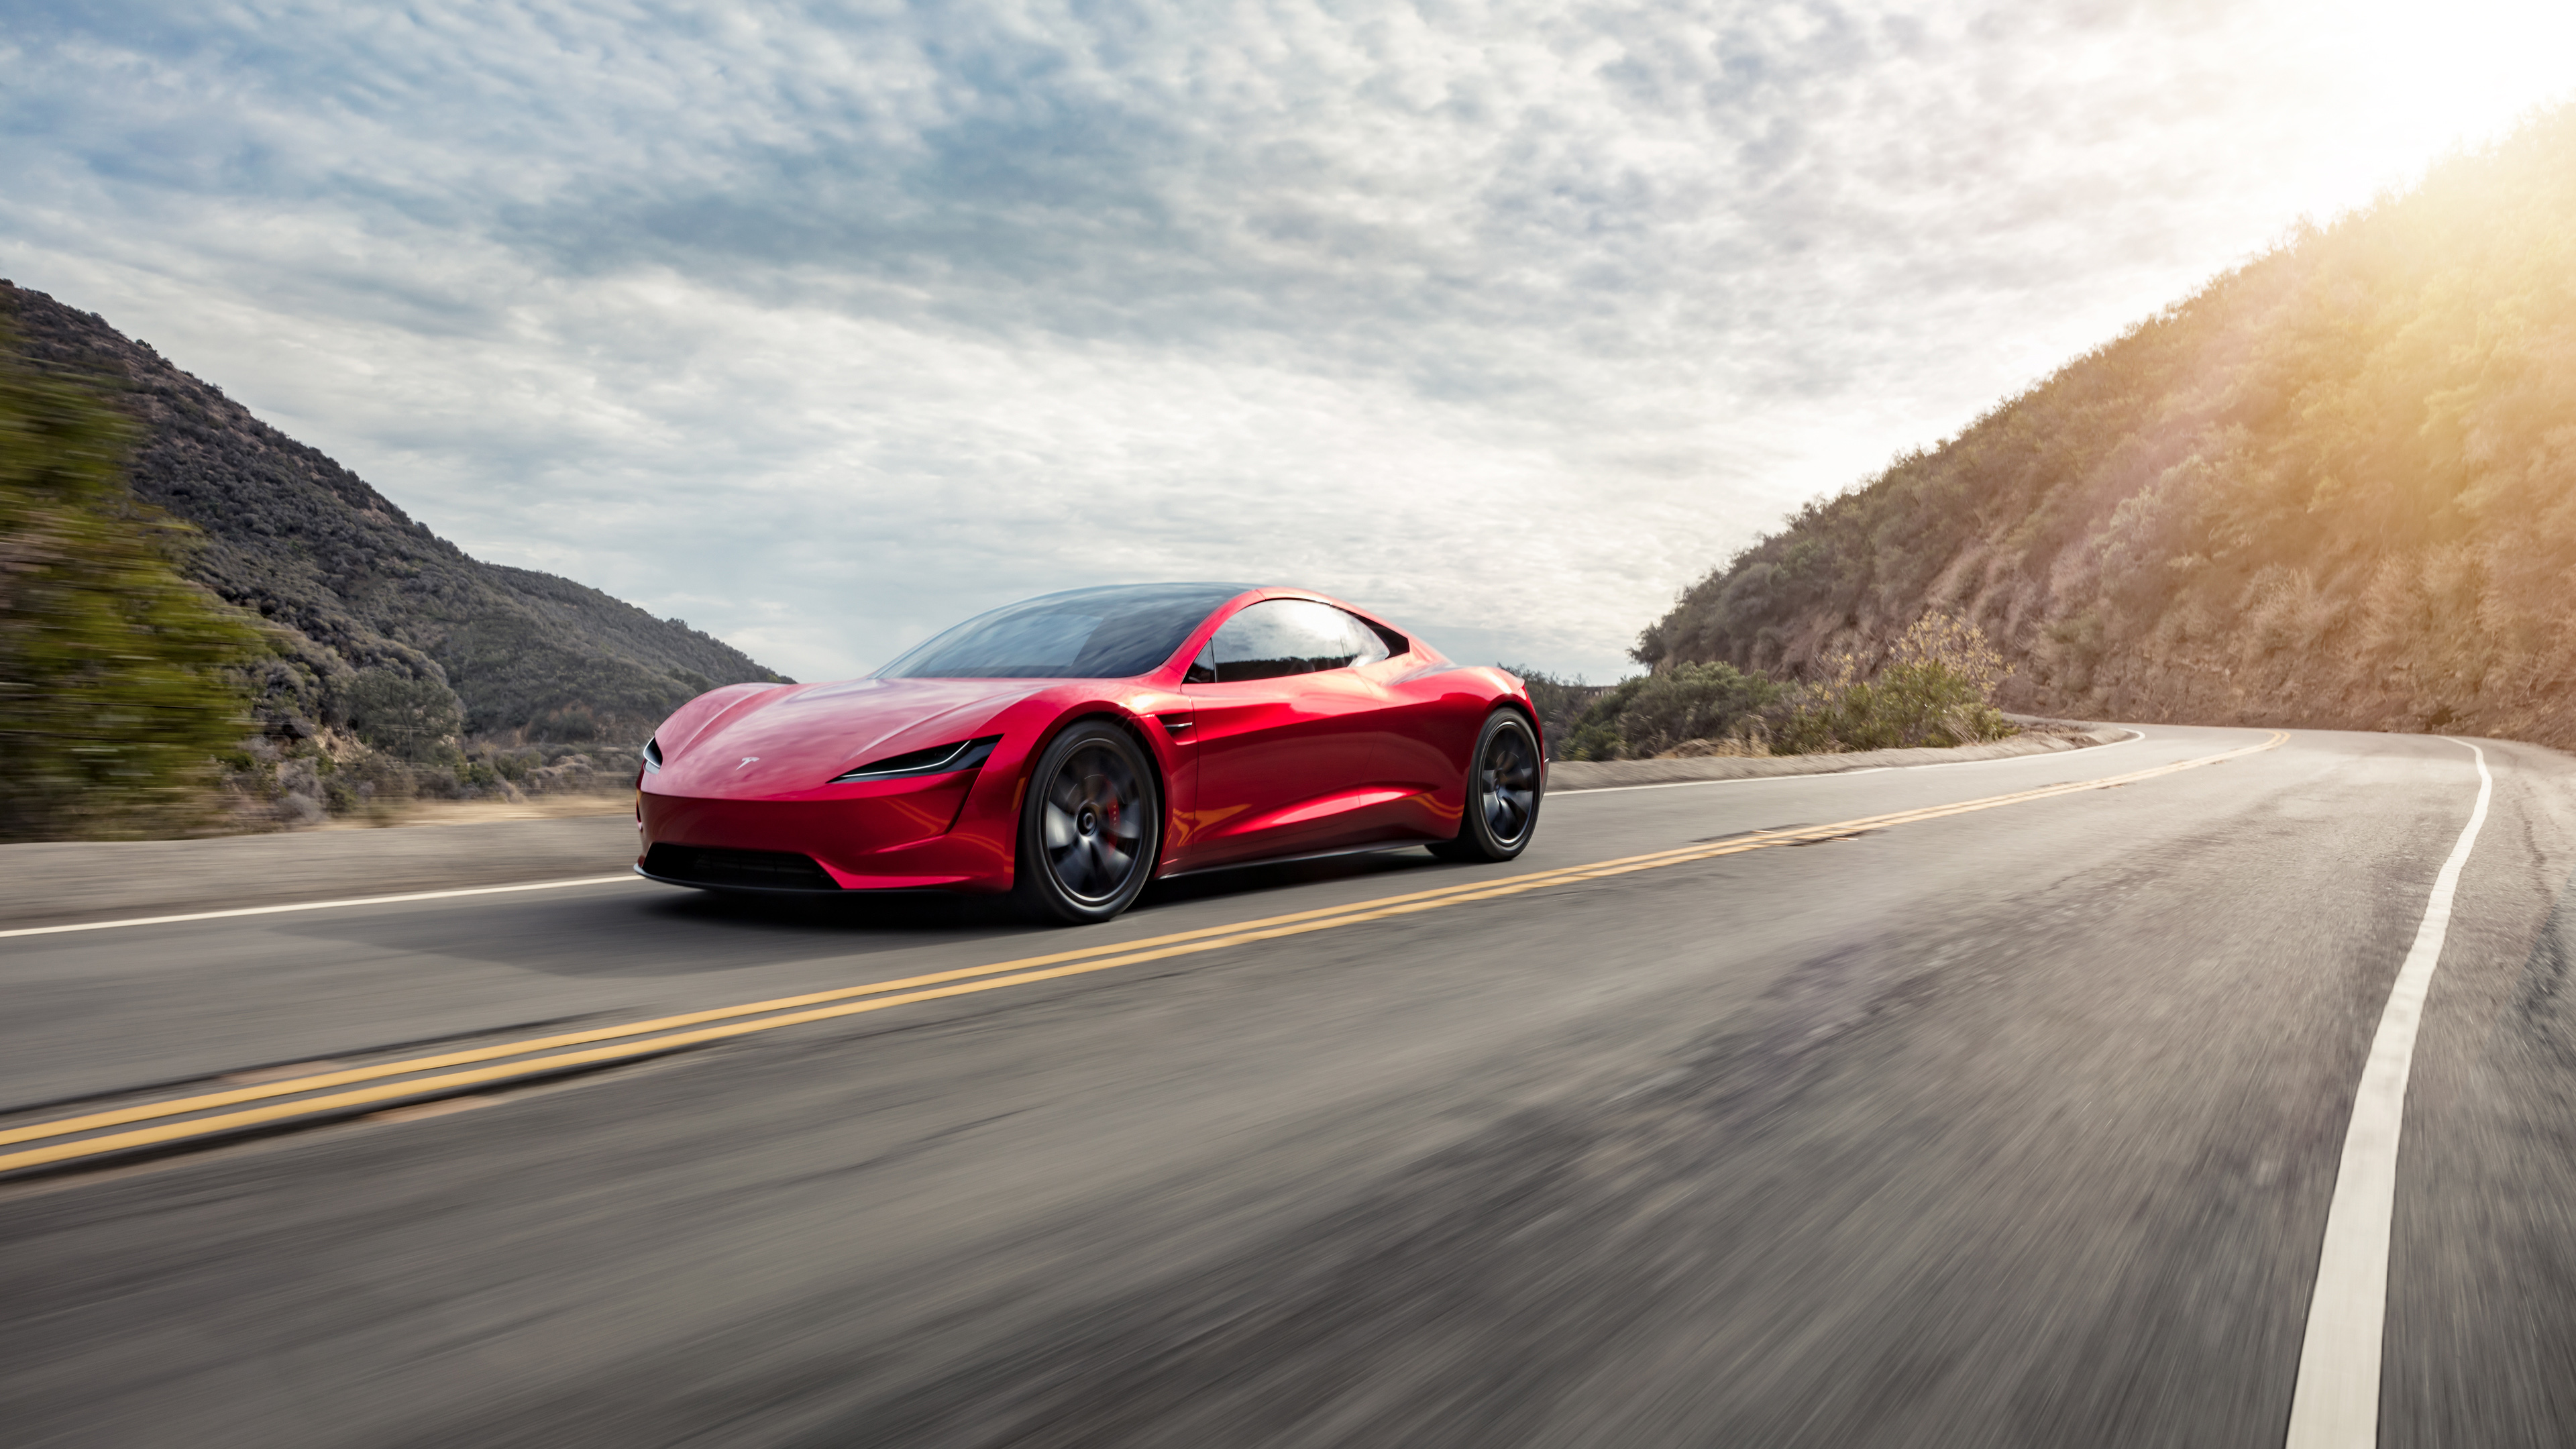 Tesla Roadster 4K 3 Wallpaper HD Car Wallpapers ID 11245